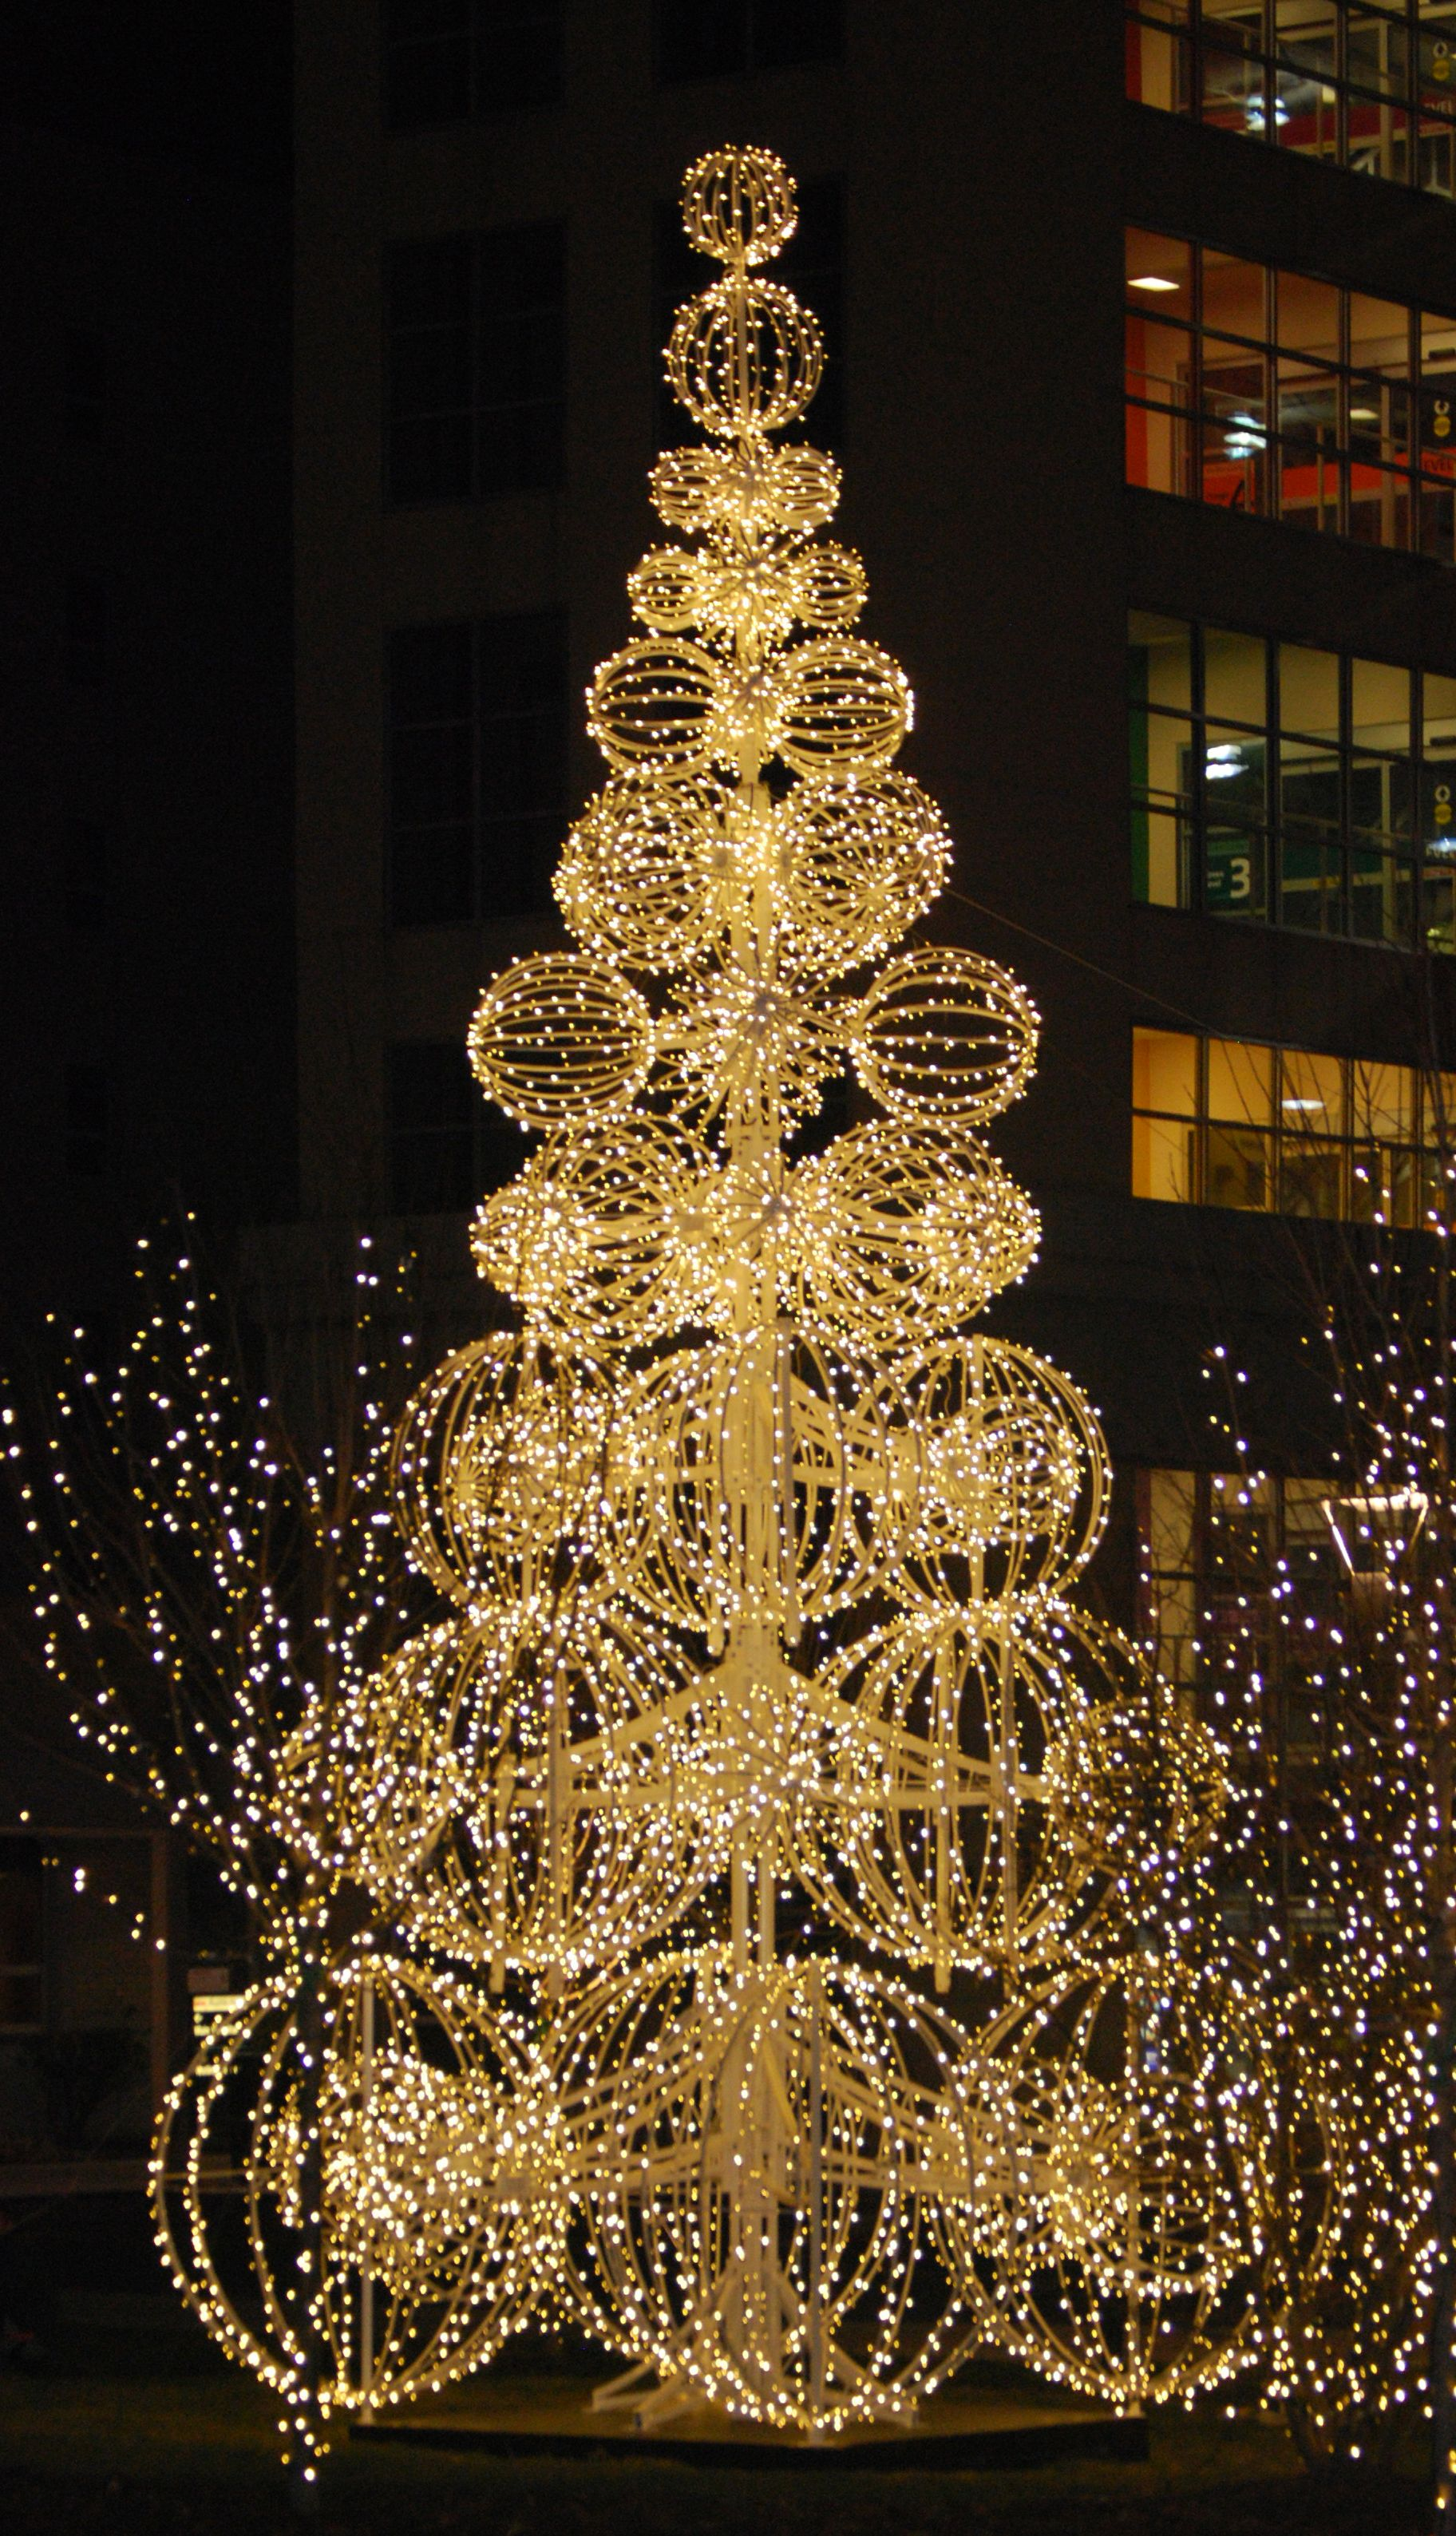 decor hall bankers home displays lighting christmas decorations commercial clg